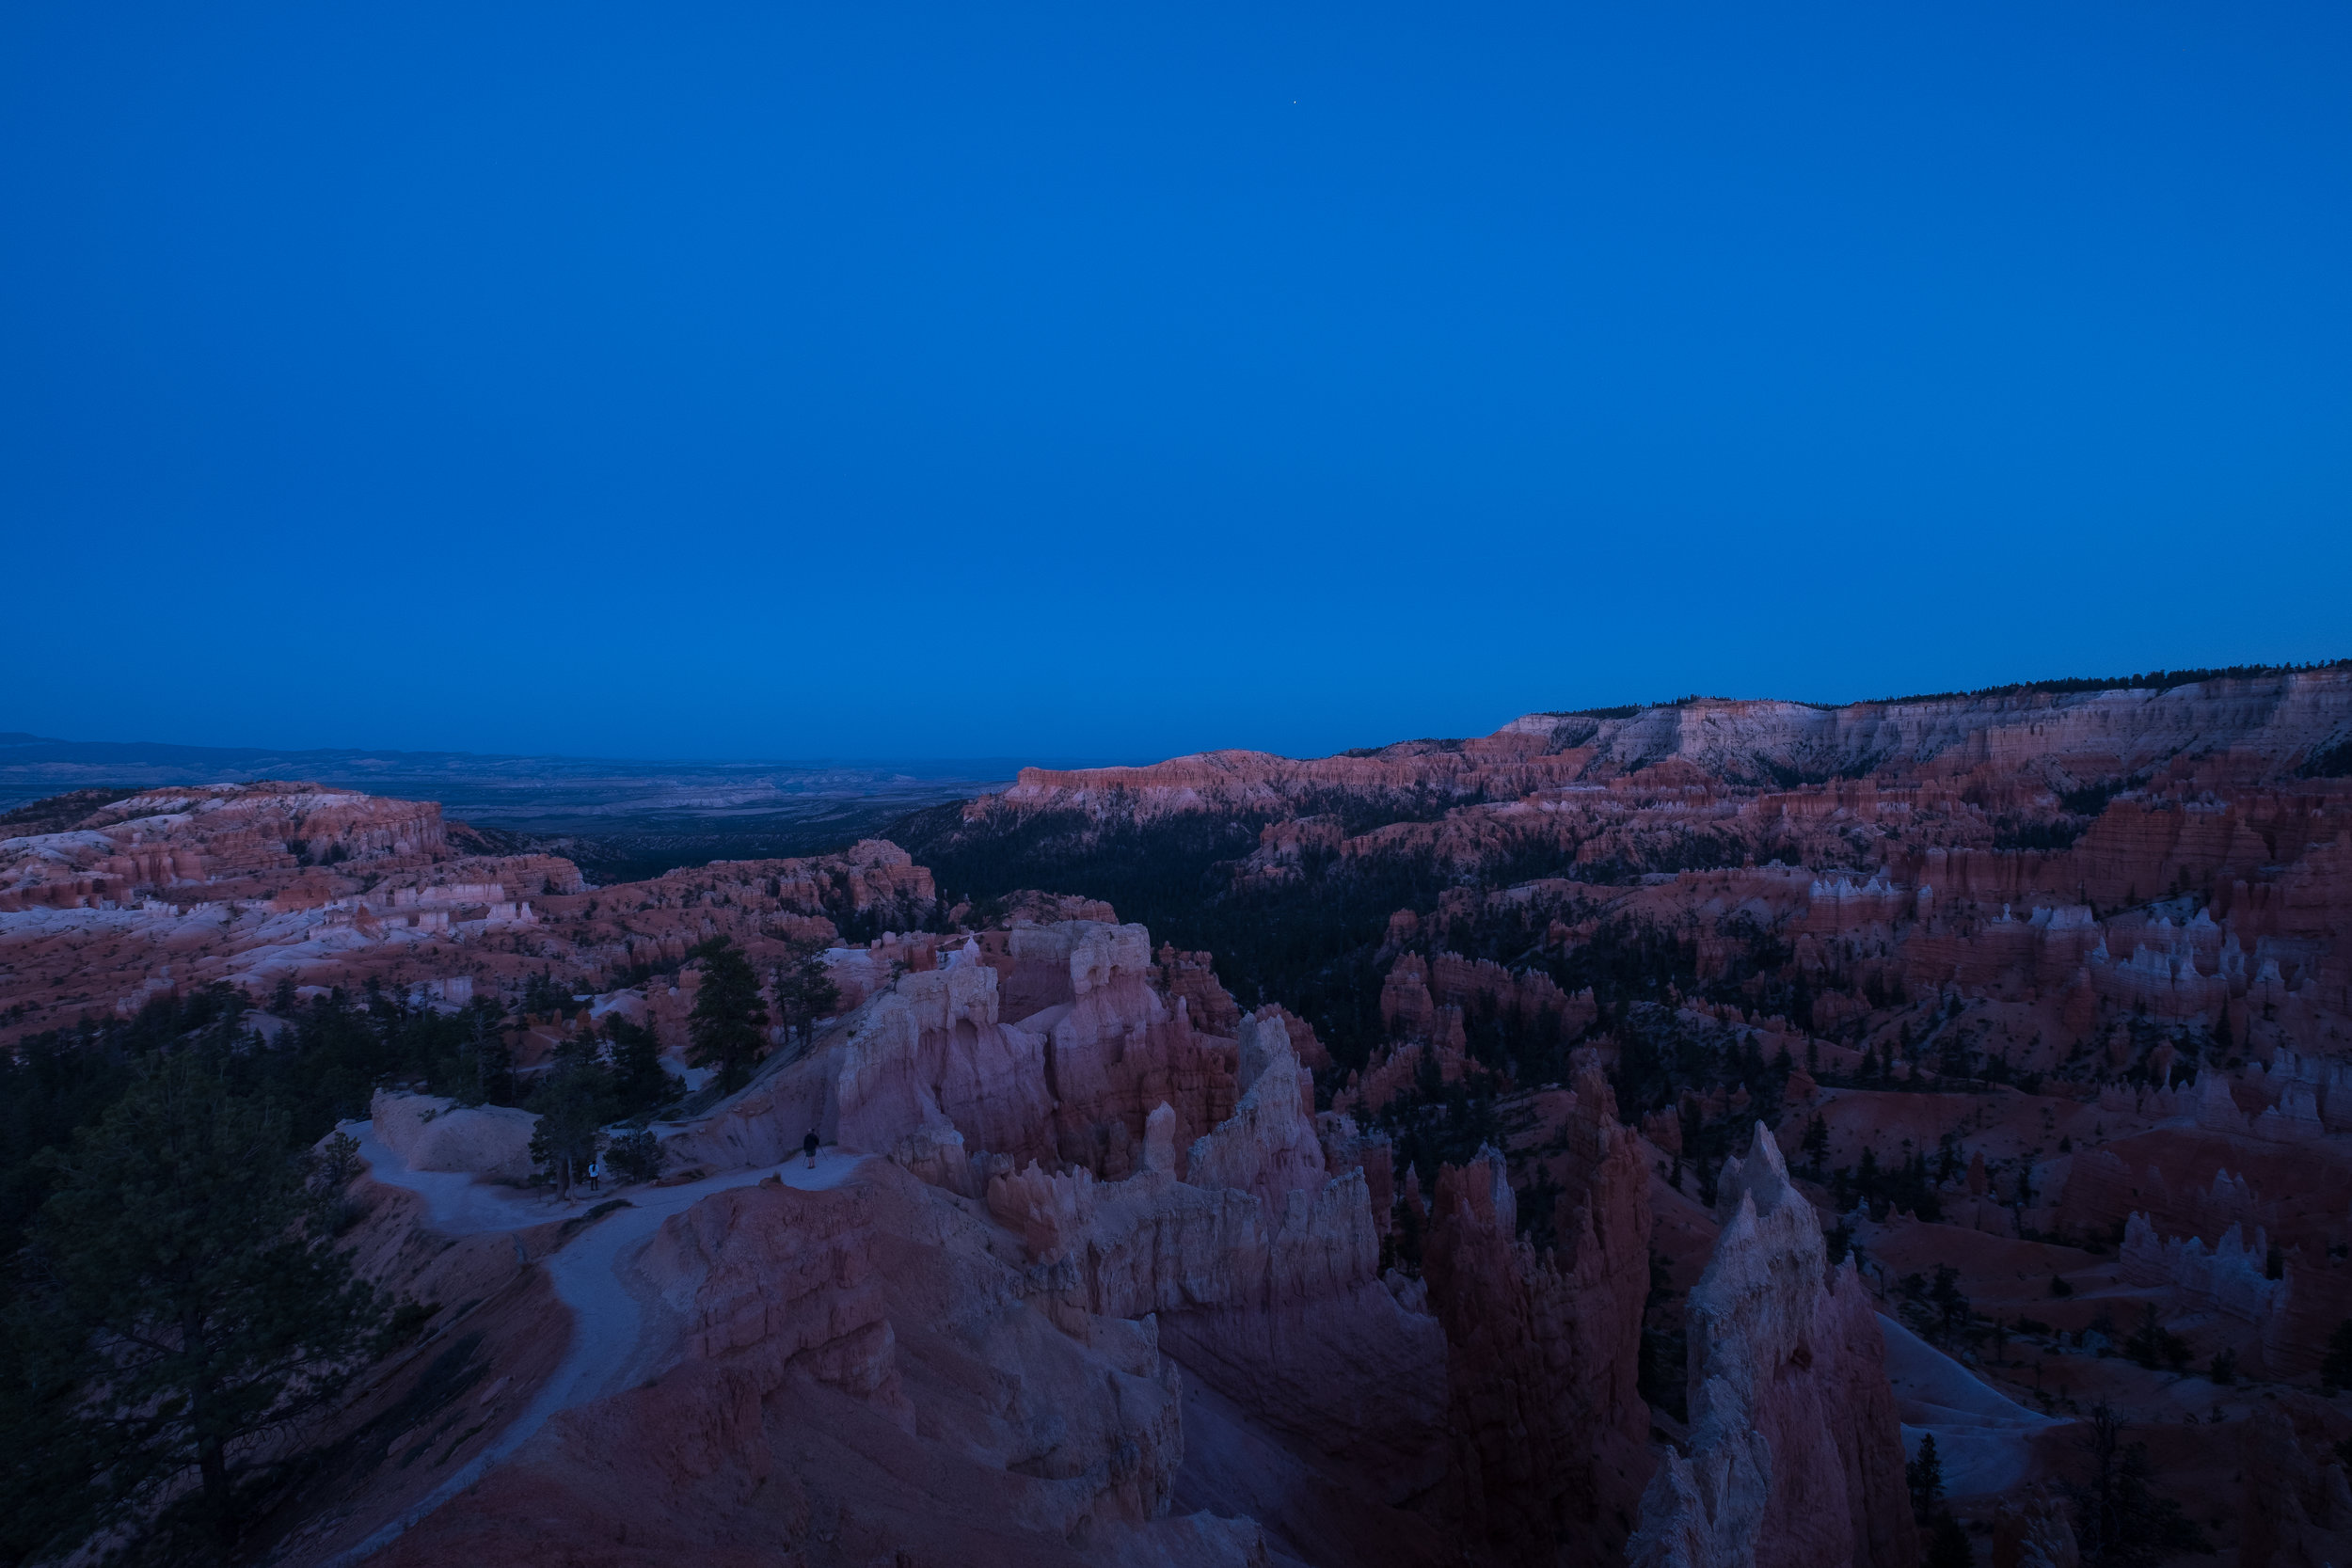 Figure 3. The canyon during civil twilight. 1 second, f/8, ISO 200.